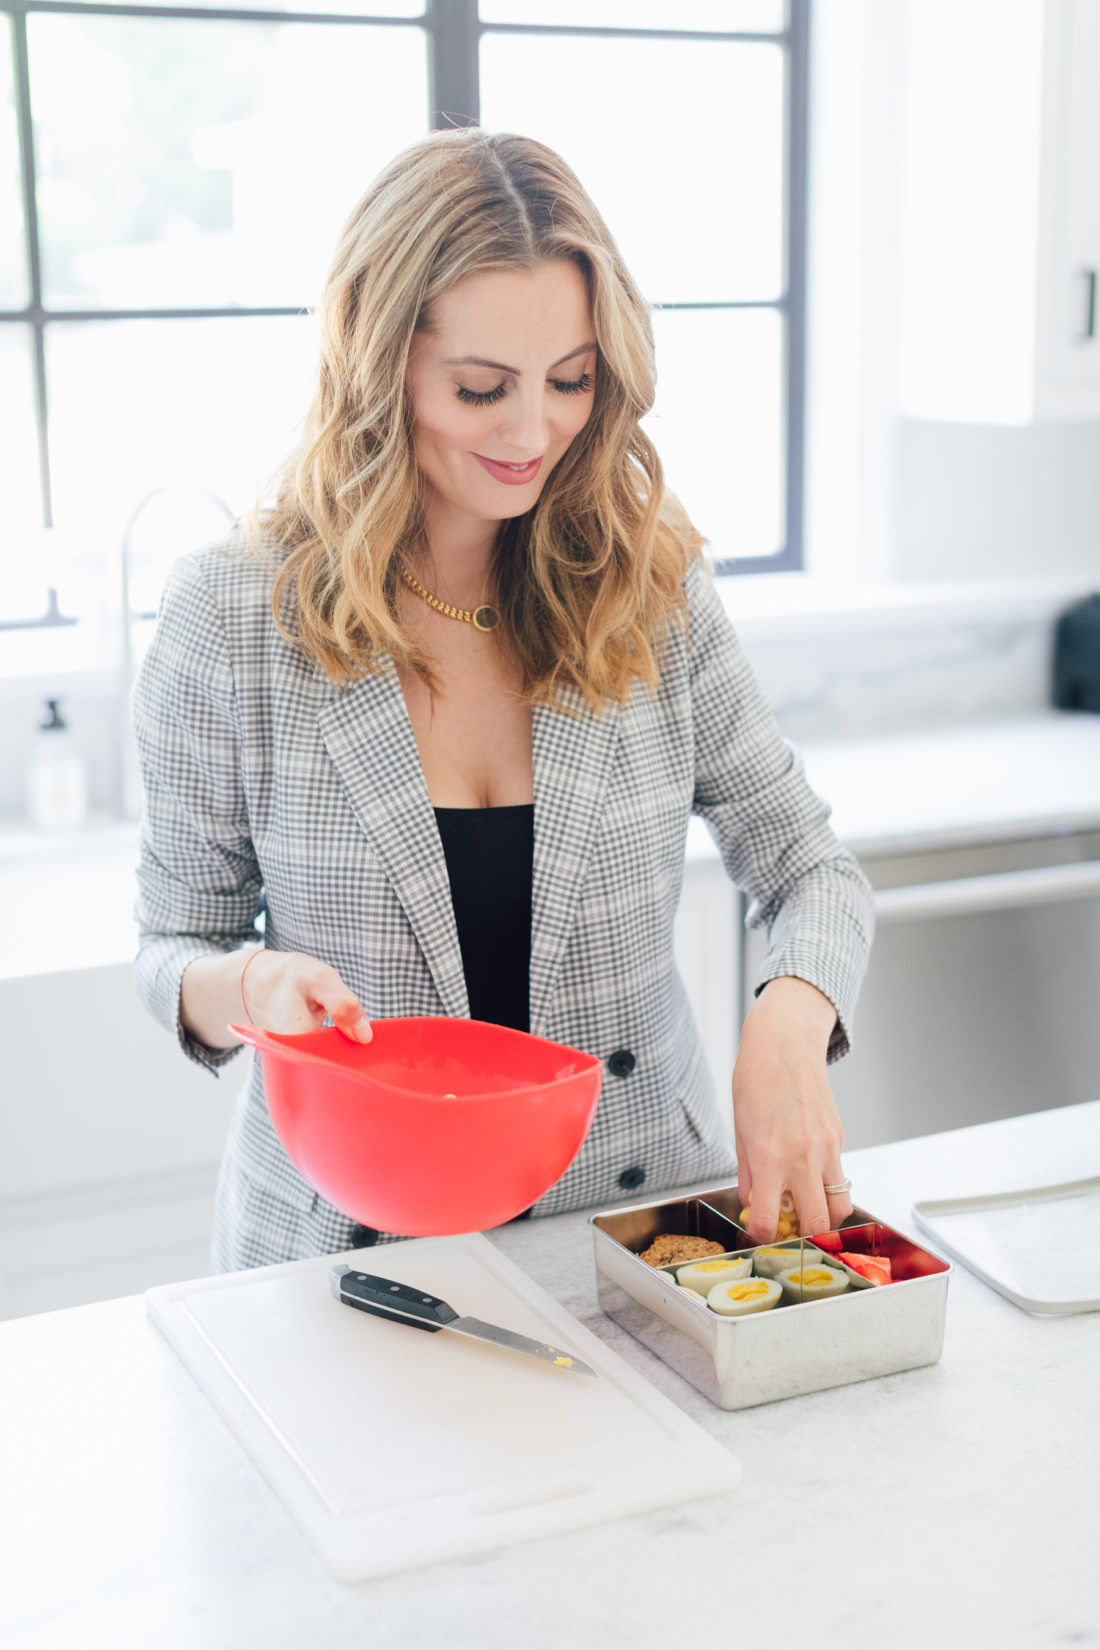 Eva Amurri Martino shows one of her 3 easy lunch box ideas